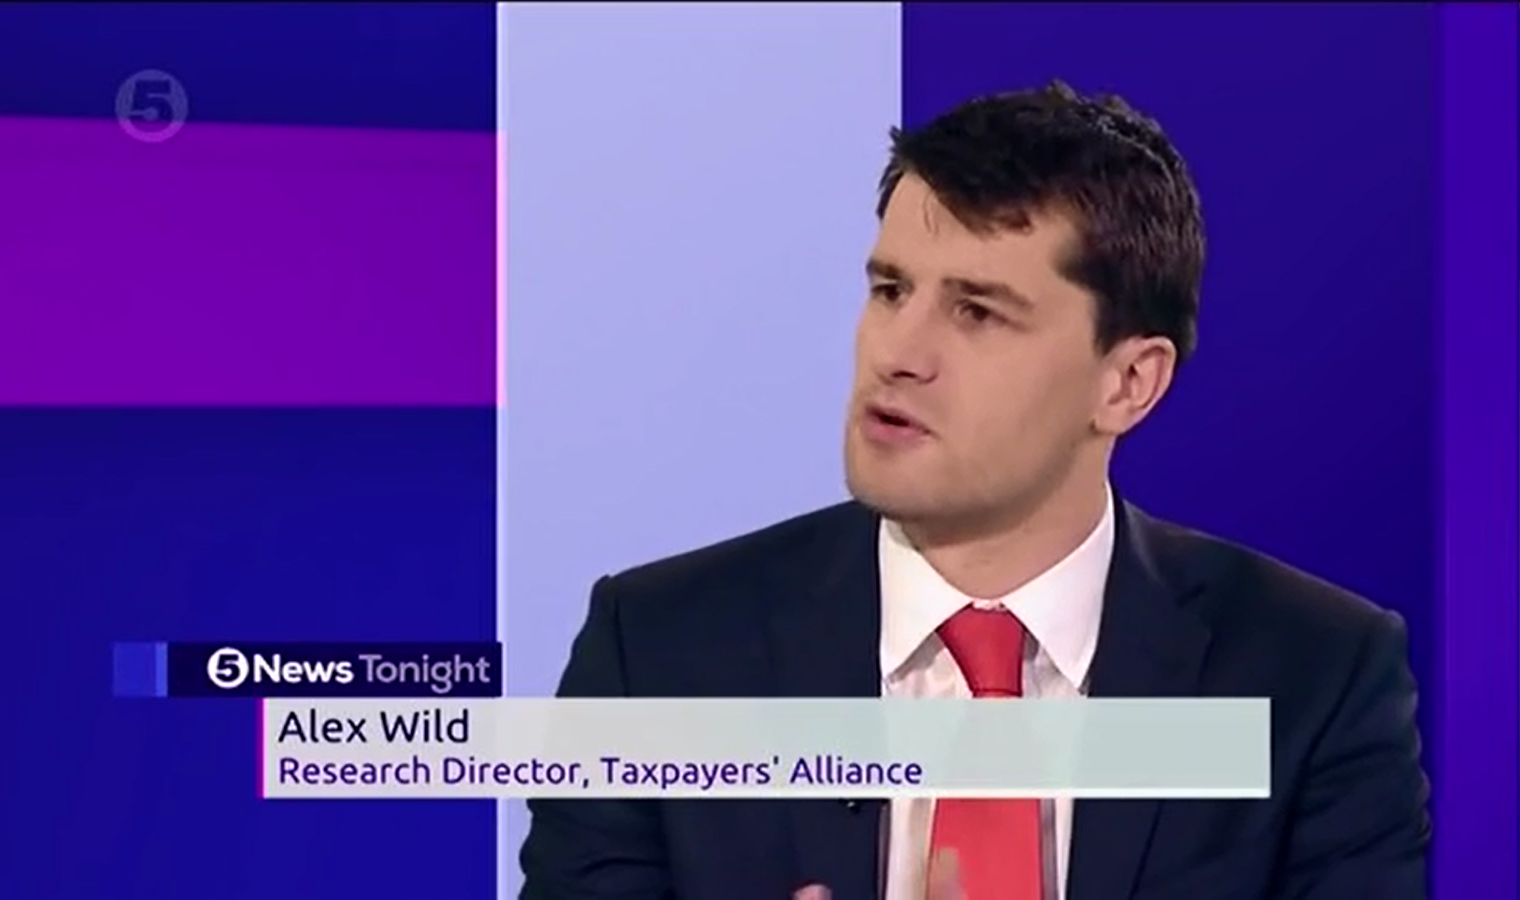 Alex Wild debates the junior doctors' stikes